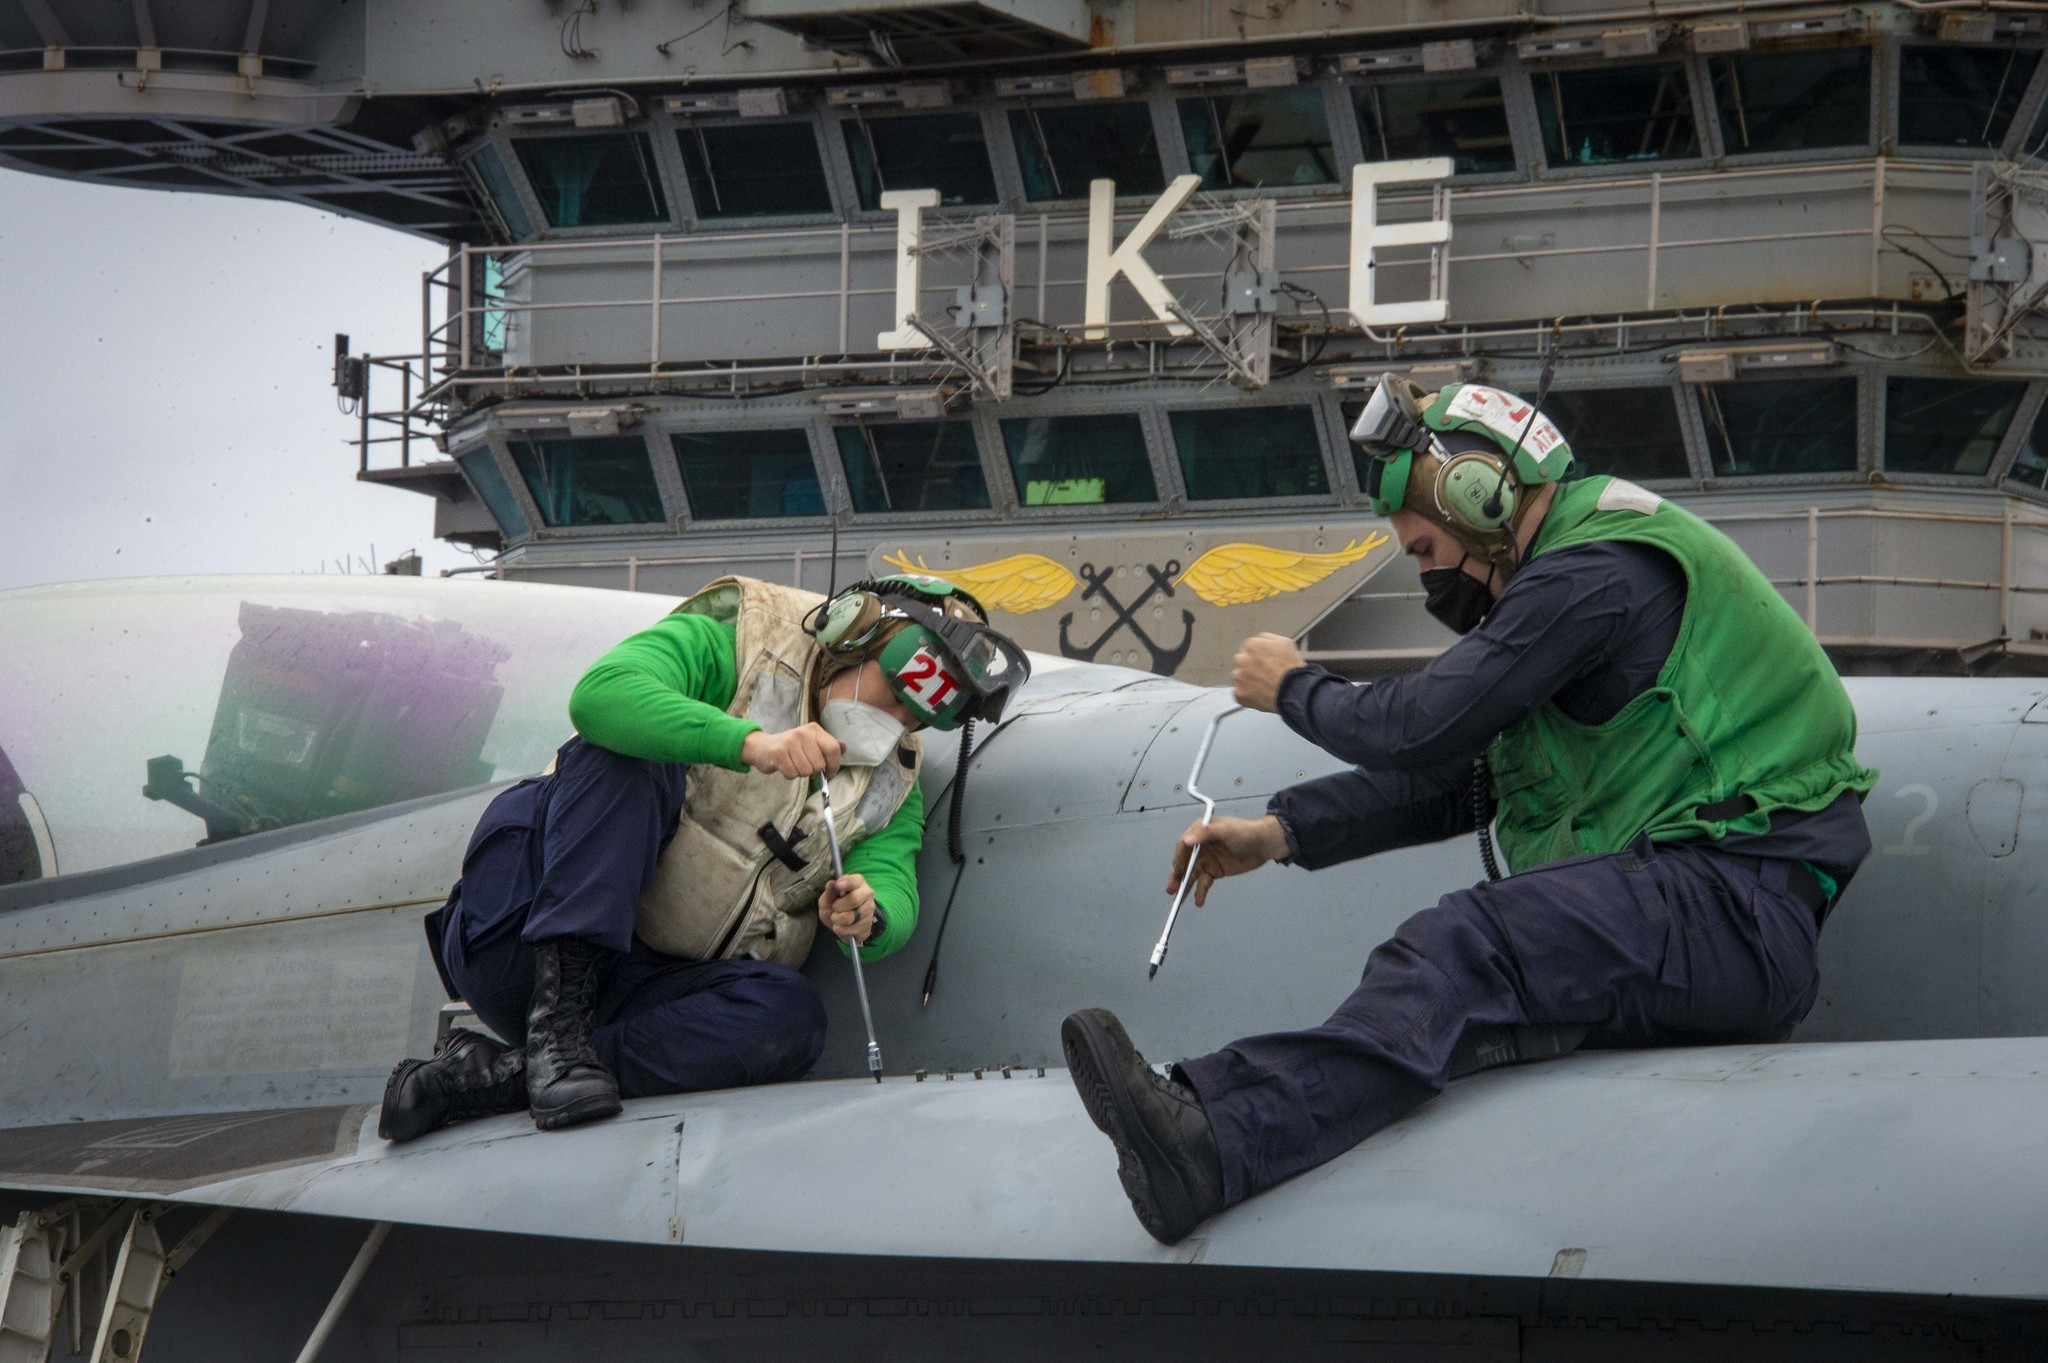 Aviation Electronics Technician 3rd Class Hongyuan Wang, left, and Aviation Electronics Technician 3rd Class Kameron Hair conduct maintenance Feb. 23, 2021, on an F/A-18E Super Hornet on the flight deck aboard the aircraft carrier USS Dwight D. Eisenhower (CVN 69) in the Atlantic Ocean. (MC3 Jairus P. Bailey/Navy)